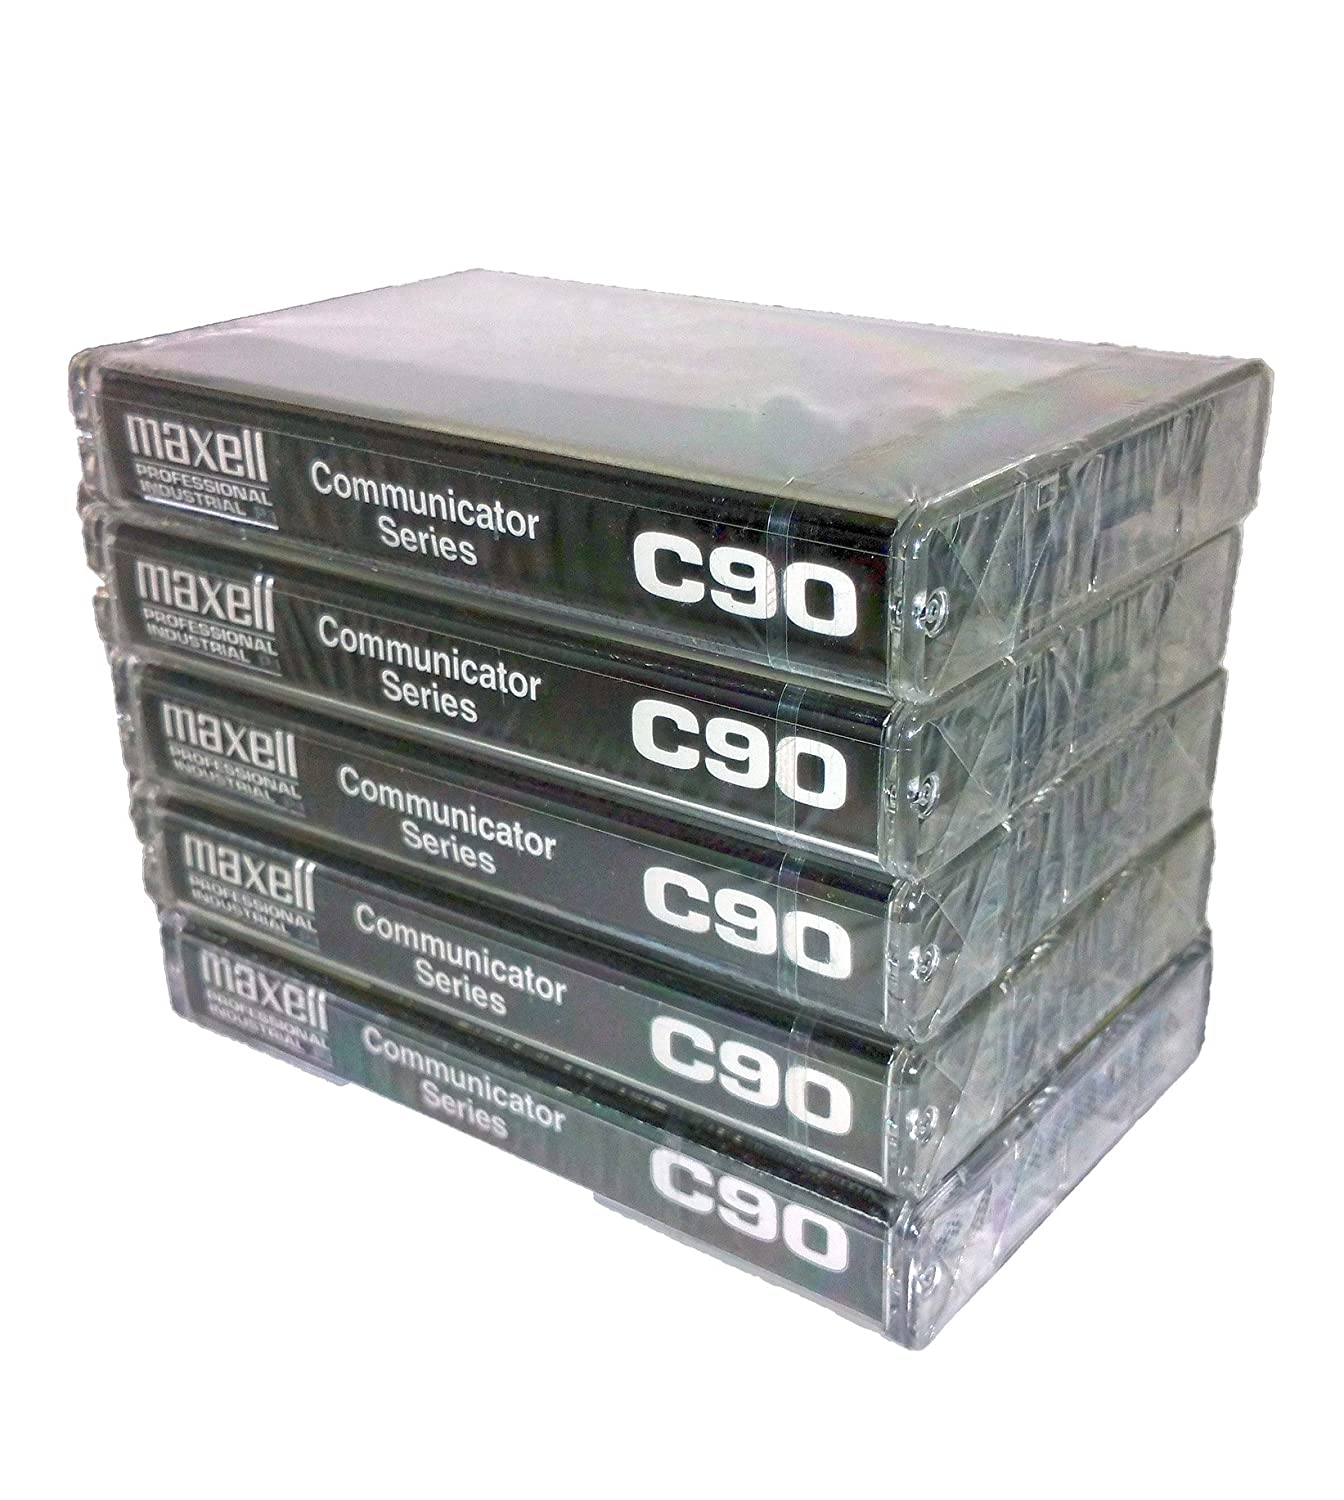 Maxell Professional Industrial Communicator Series C90 Audio Cassette Tapes - 5 Pack Maxell Corporation of America LYSB01B41AGGQ-ELECTRNCS